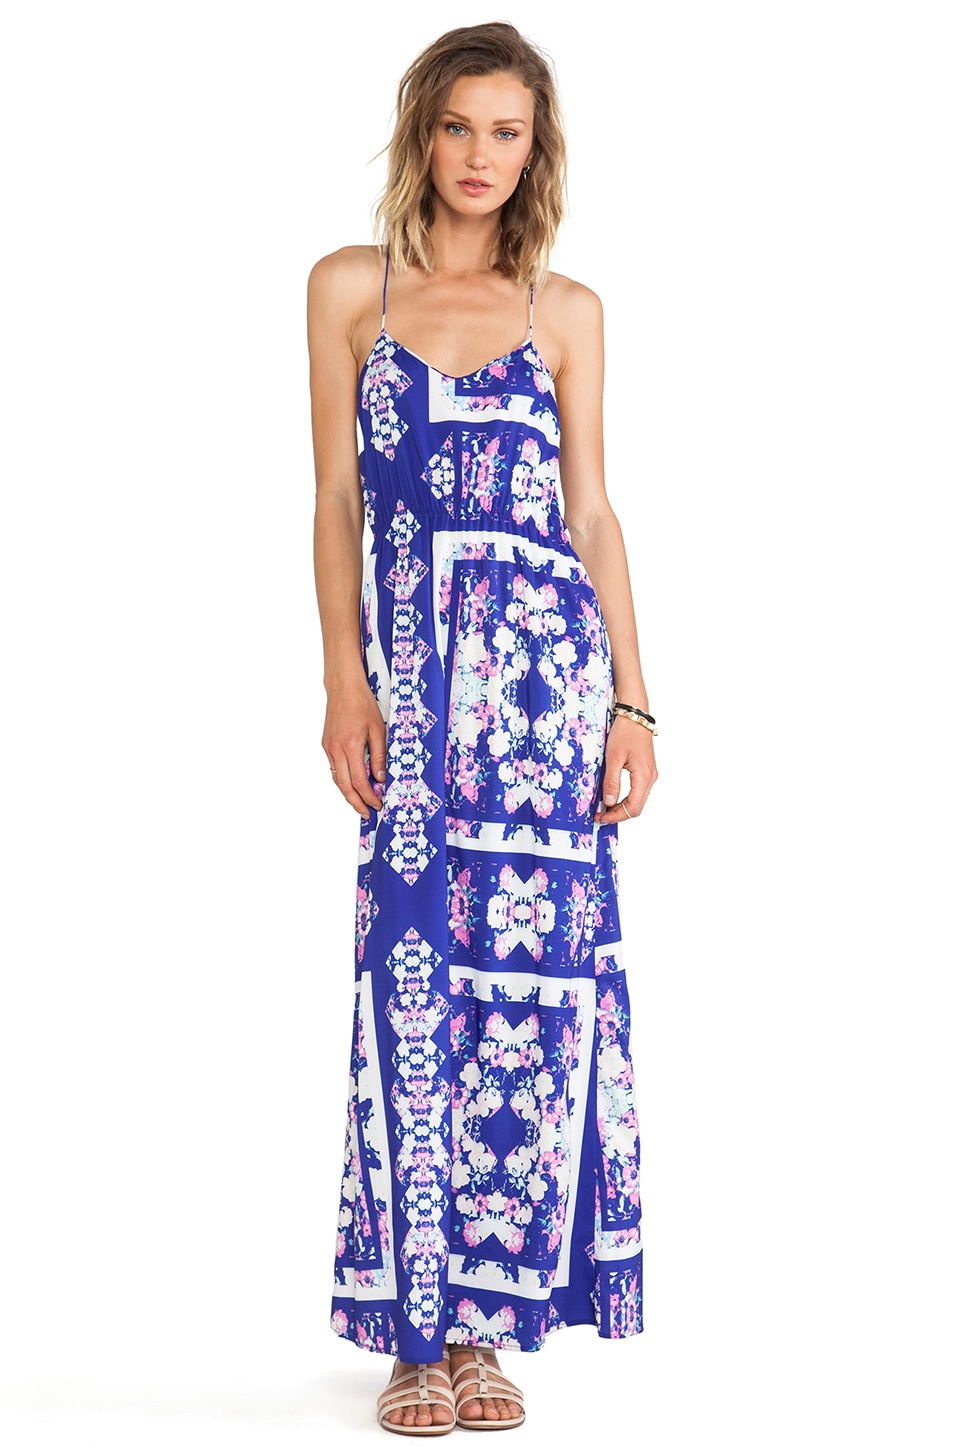 ISLA_CO Bright Dew Maxi Dress in Floral Glass Print